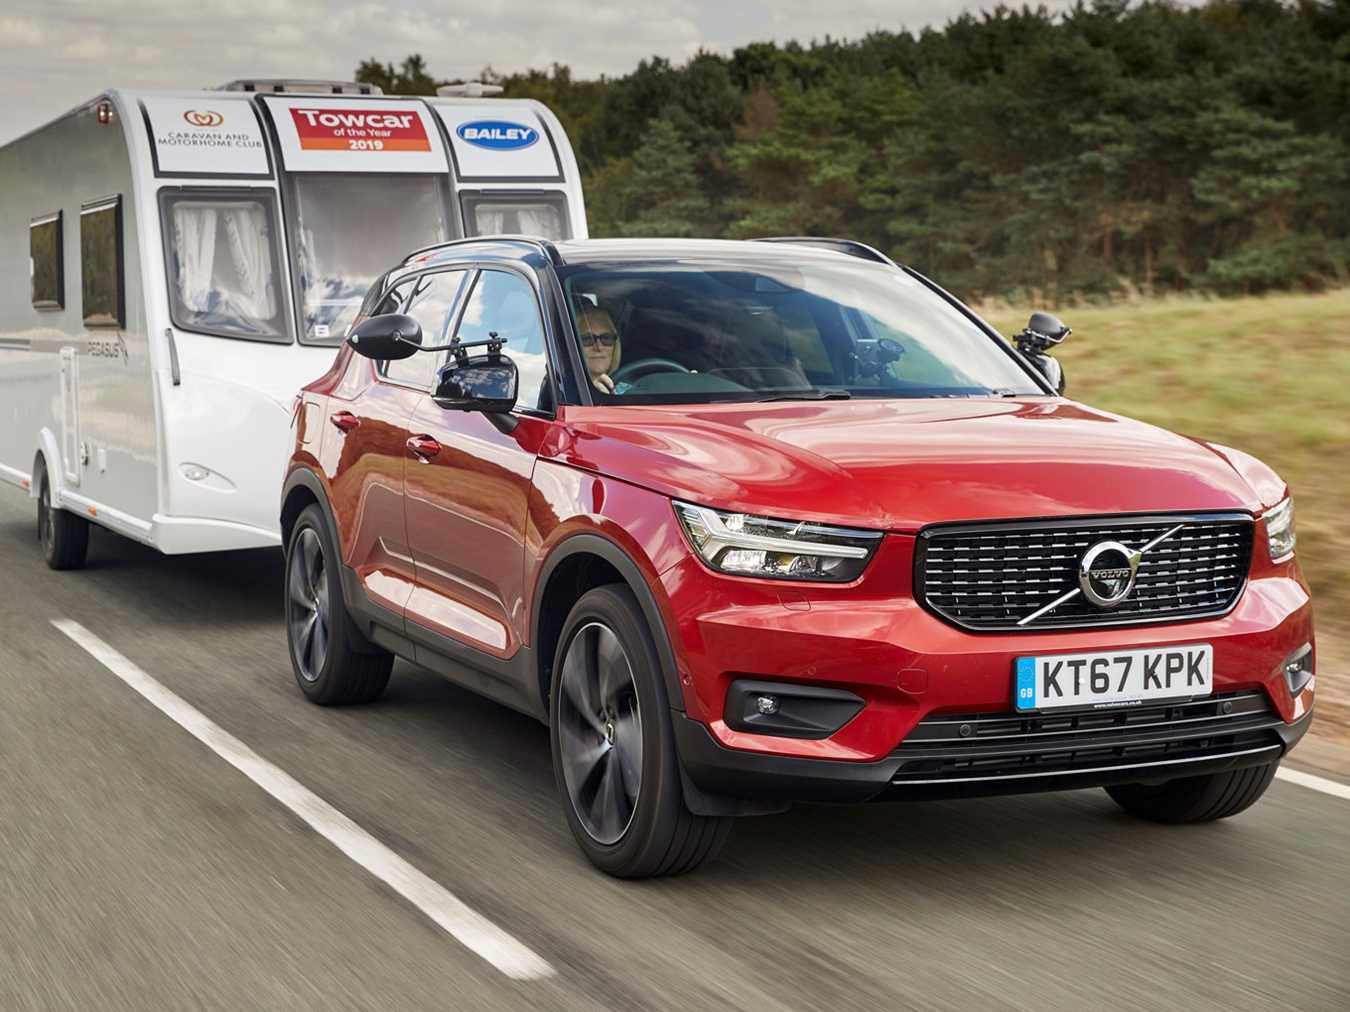 XC60 takes Towcar of The Year title as Volvo enjoys